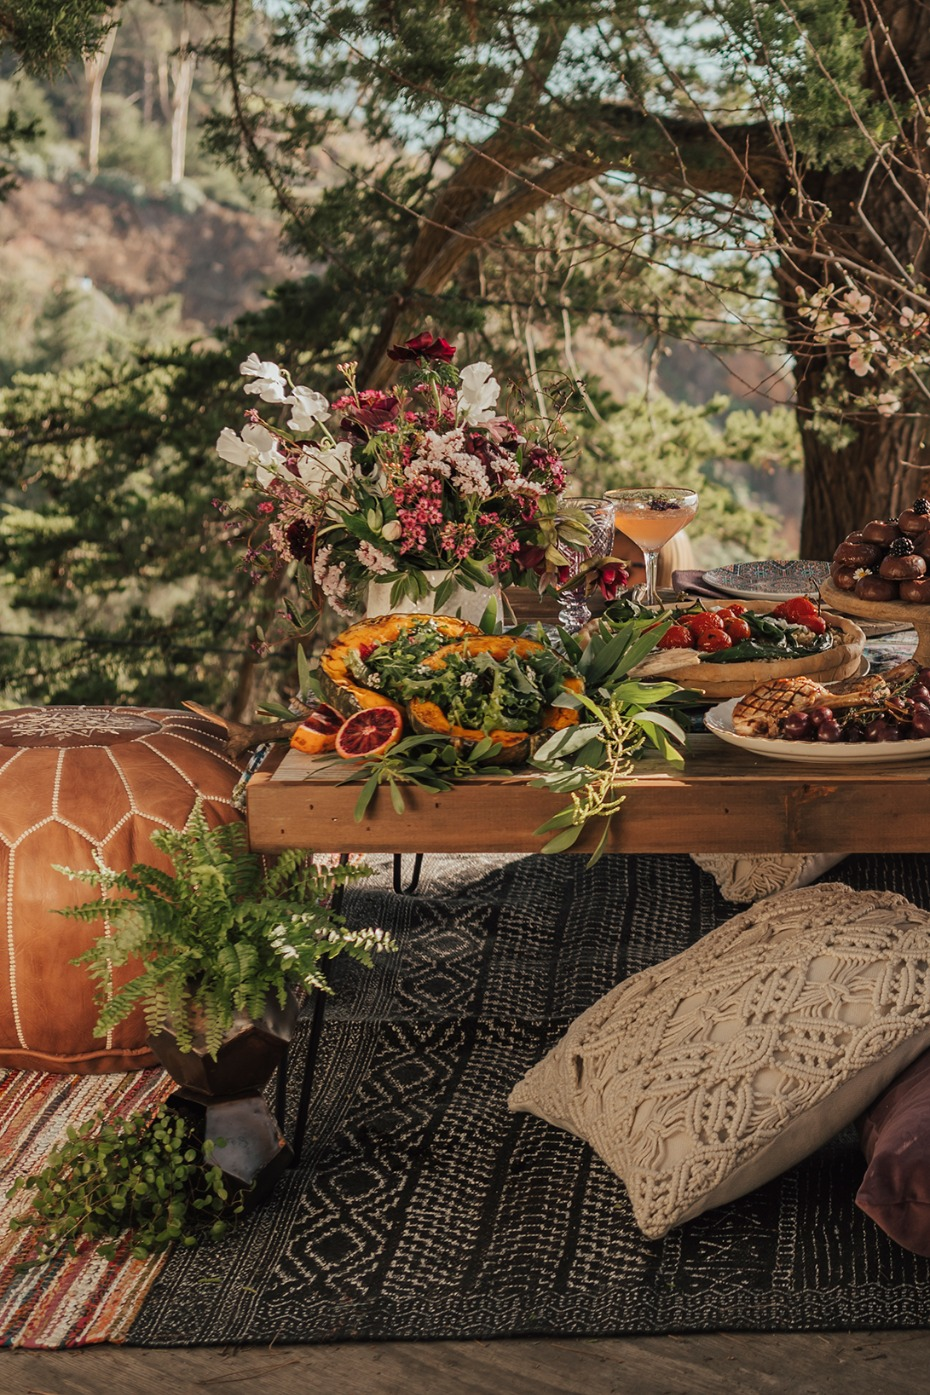 Bohemian picnic table design